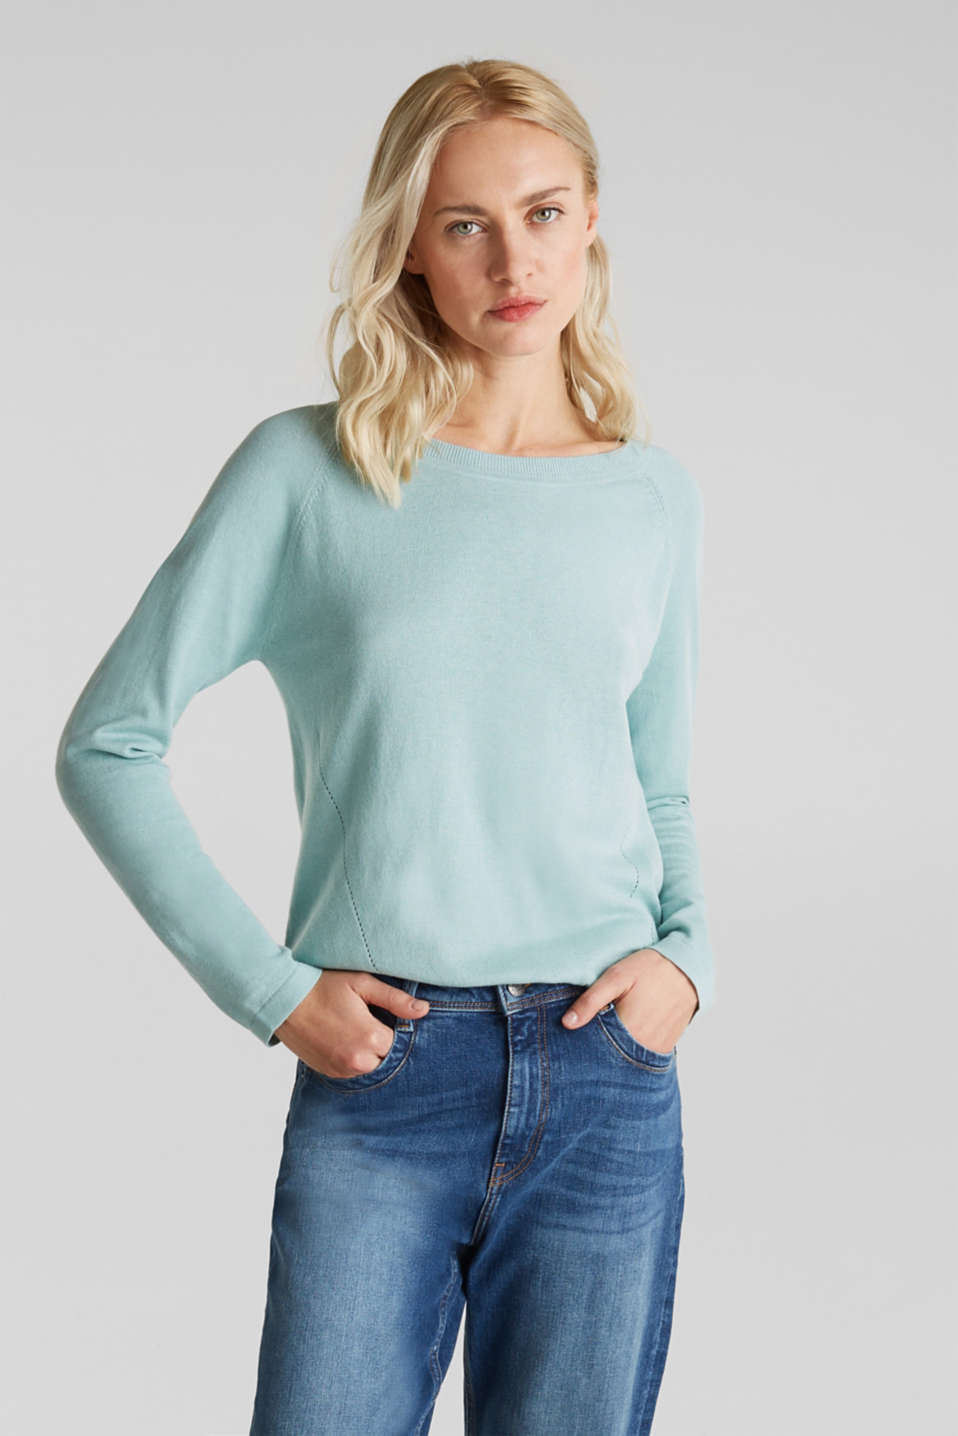 With linen: Jumper with open-work patterned details, LIGHT AQUA GREEN, detail image number 0